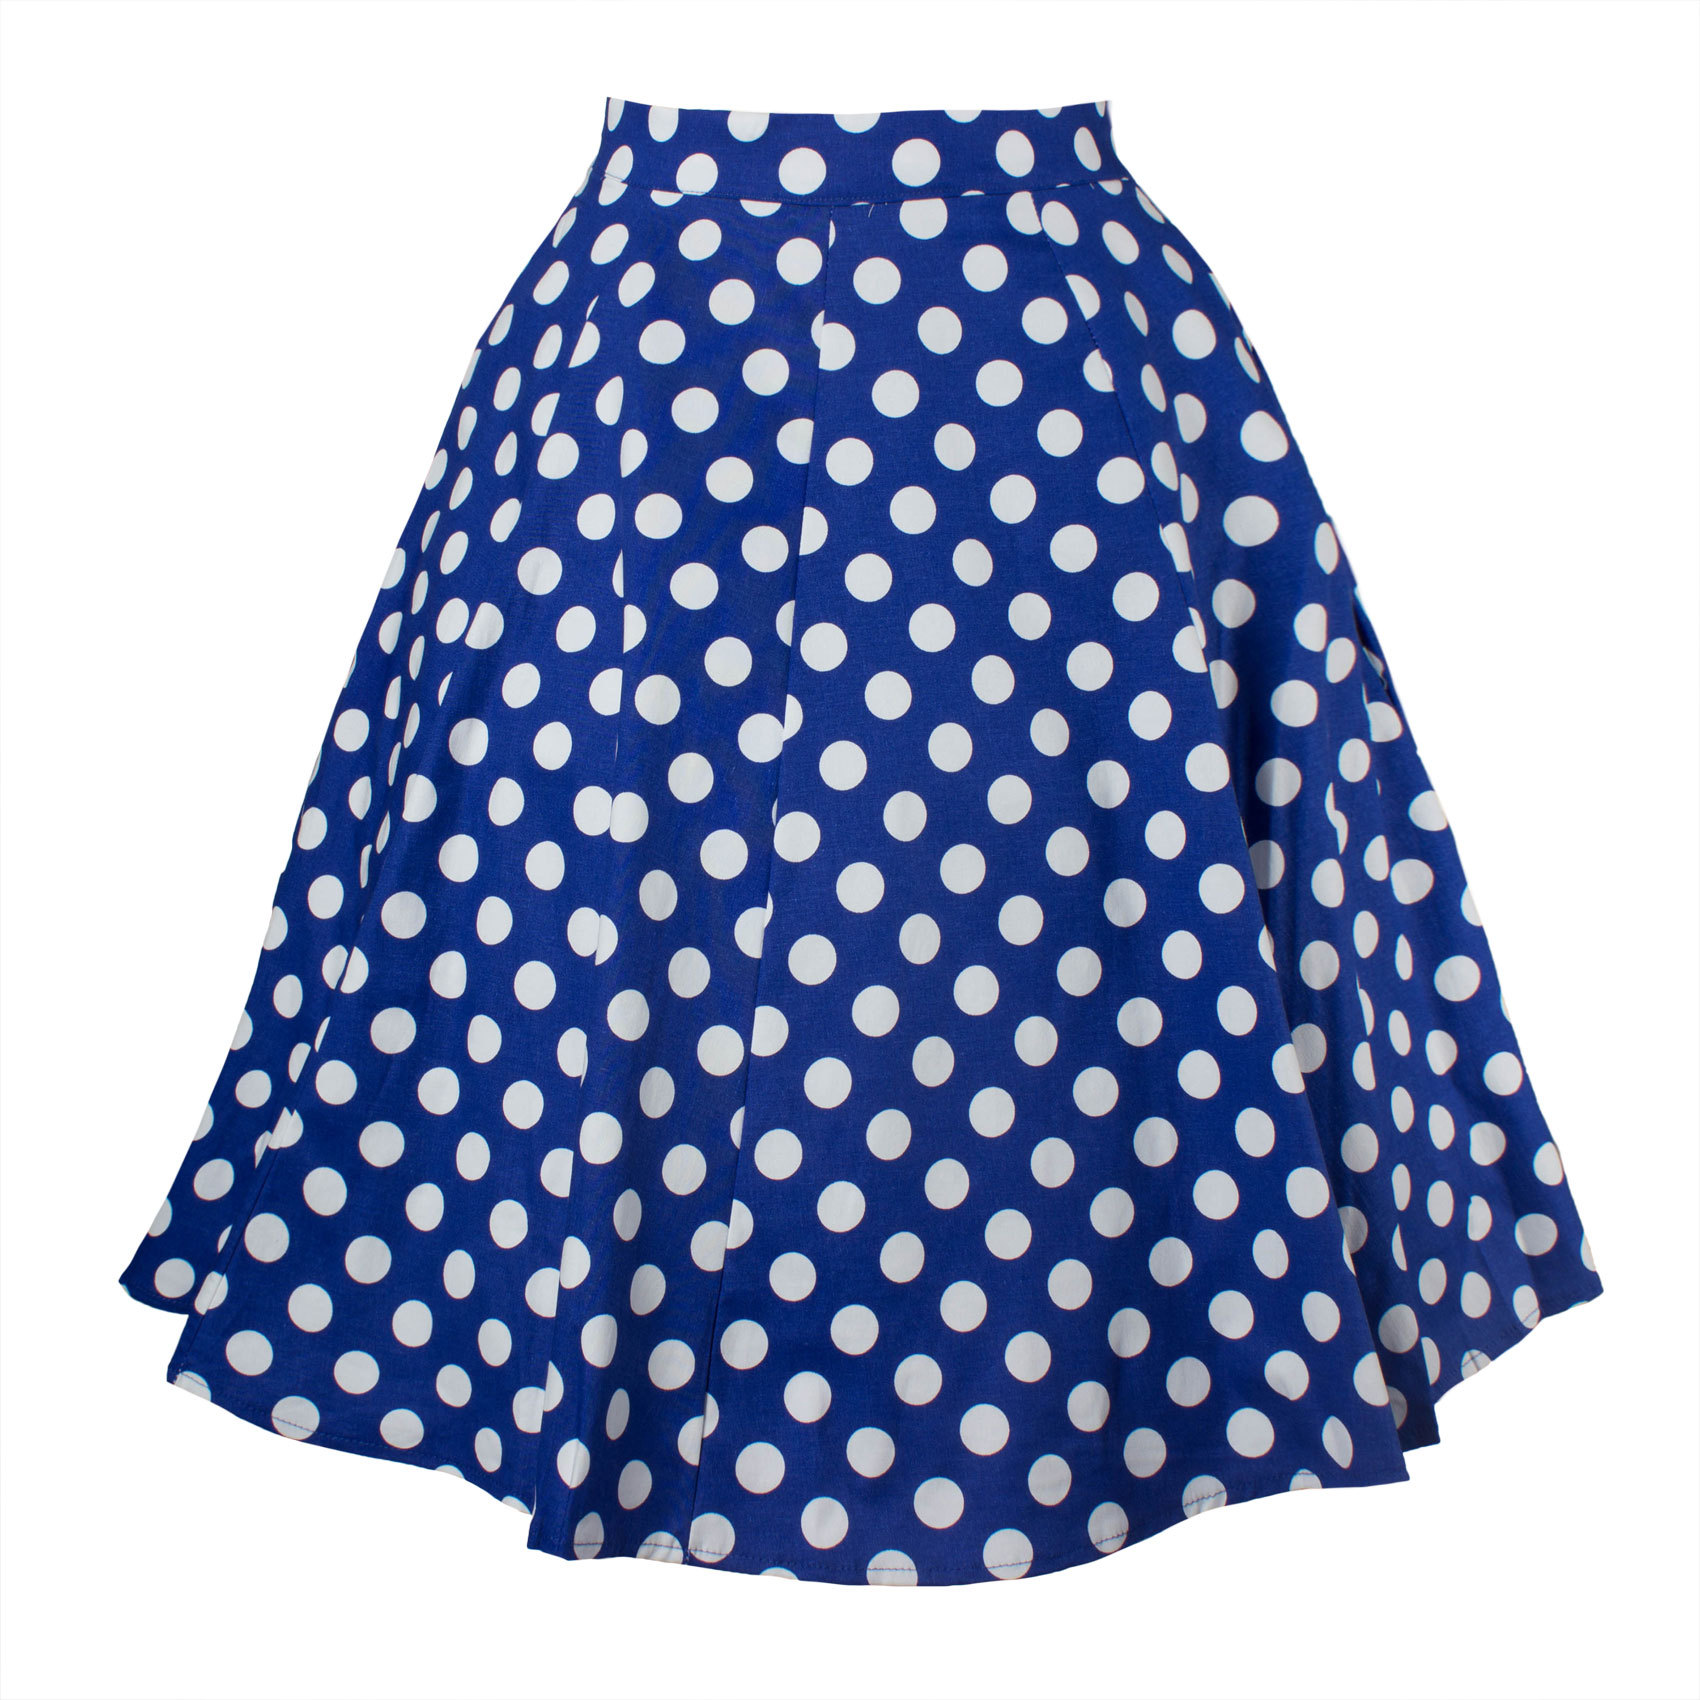 Daily Suit OWLPRINCESS  Women's 2020 Autumn Retro Polka Dot Skirt